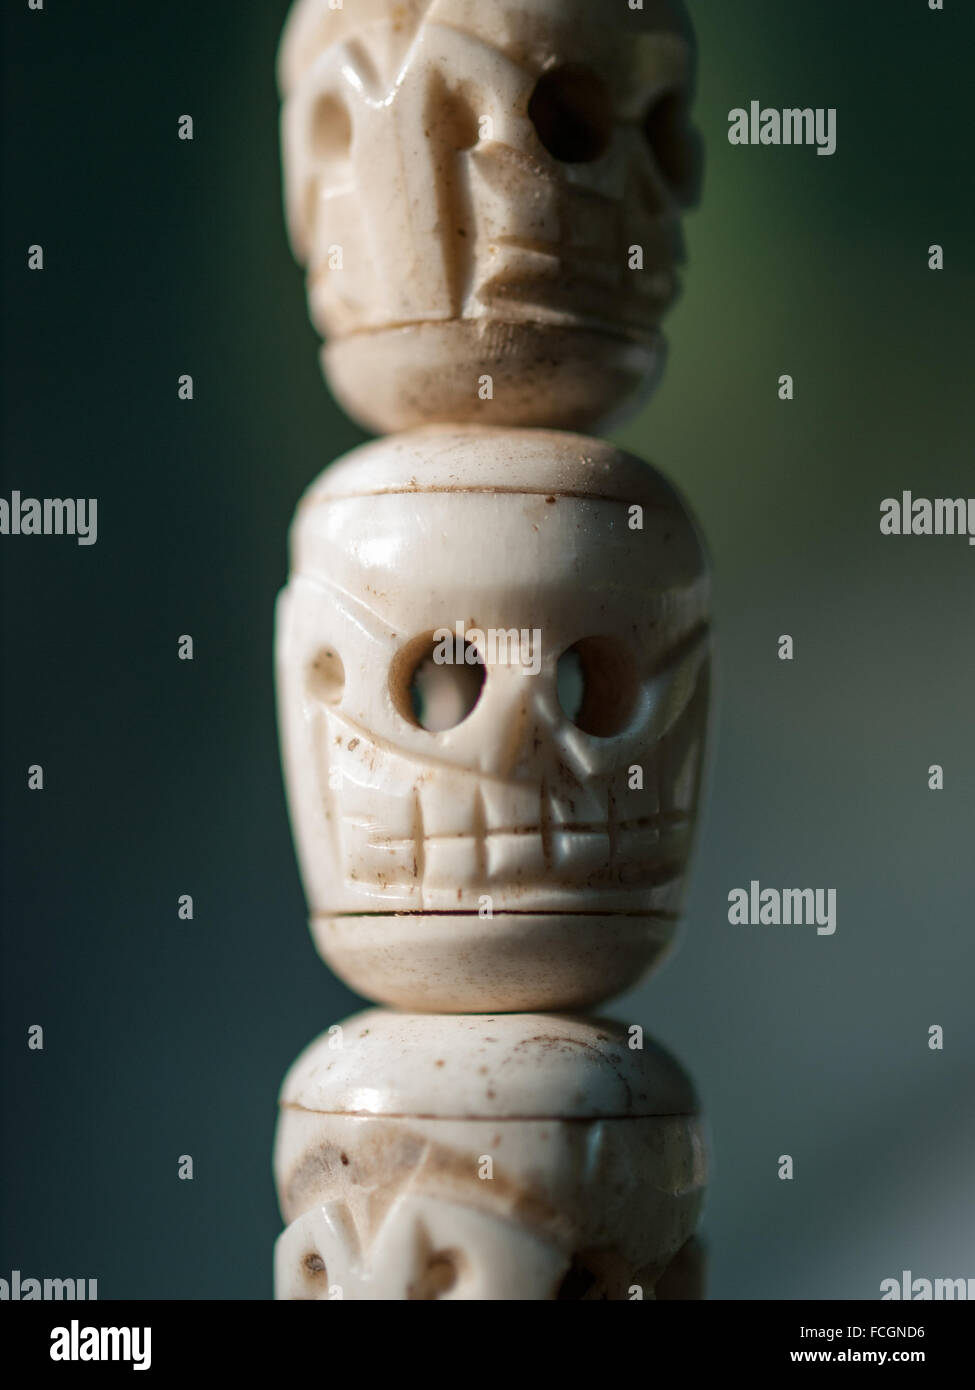 Primitive carving of three human skeletons hanging on string. - Stock Image